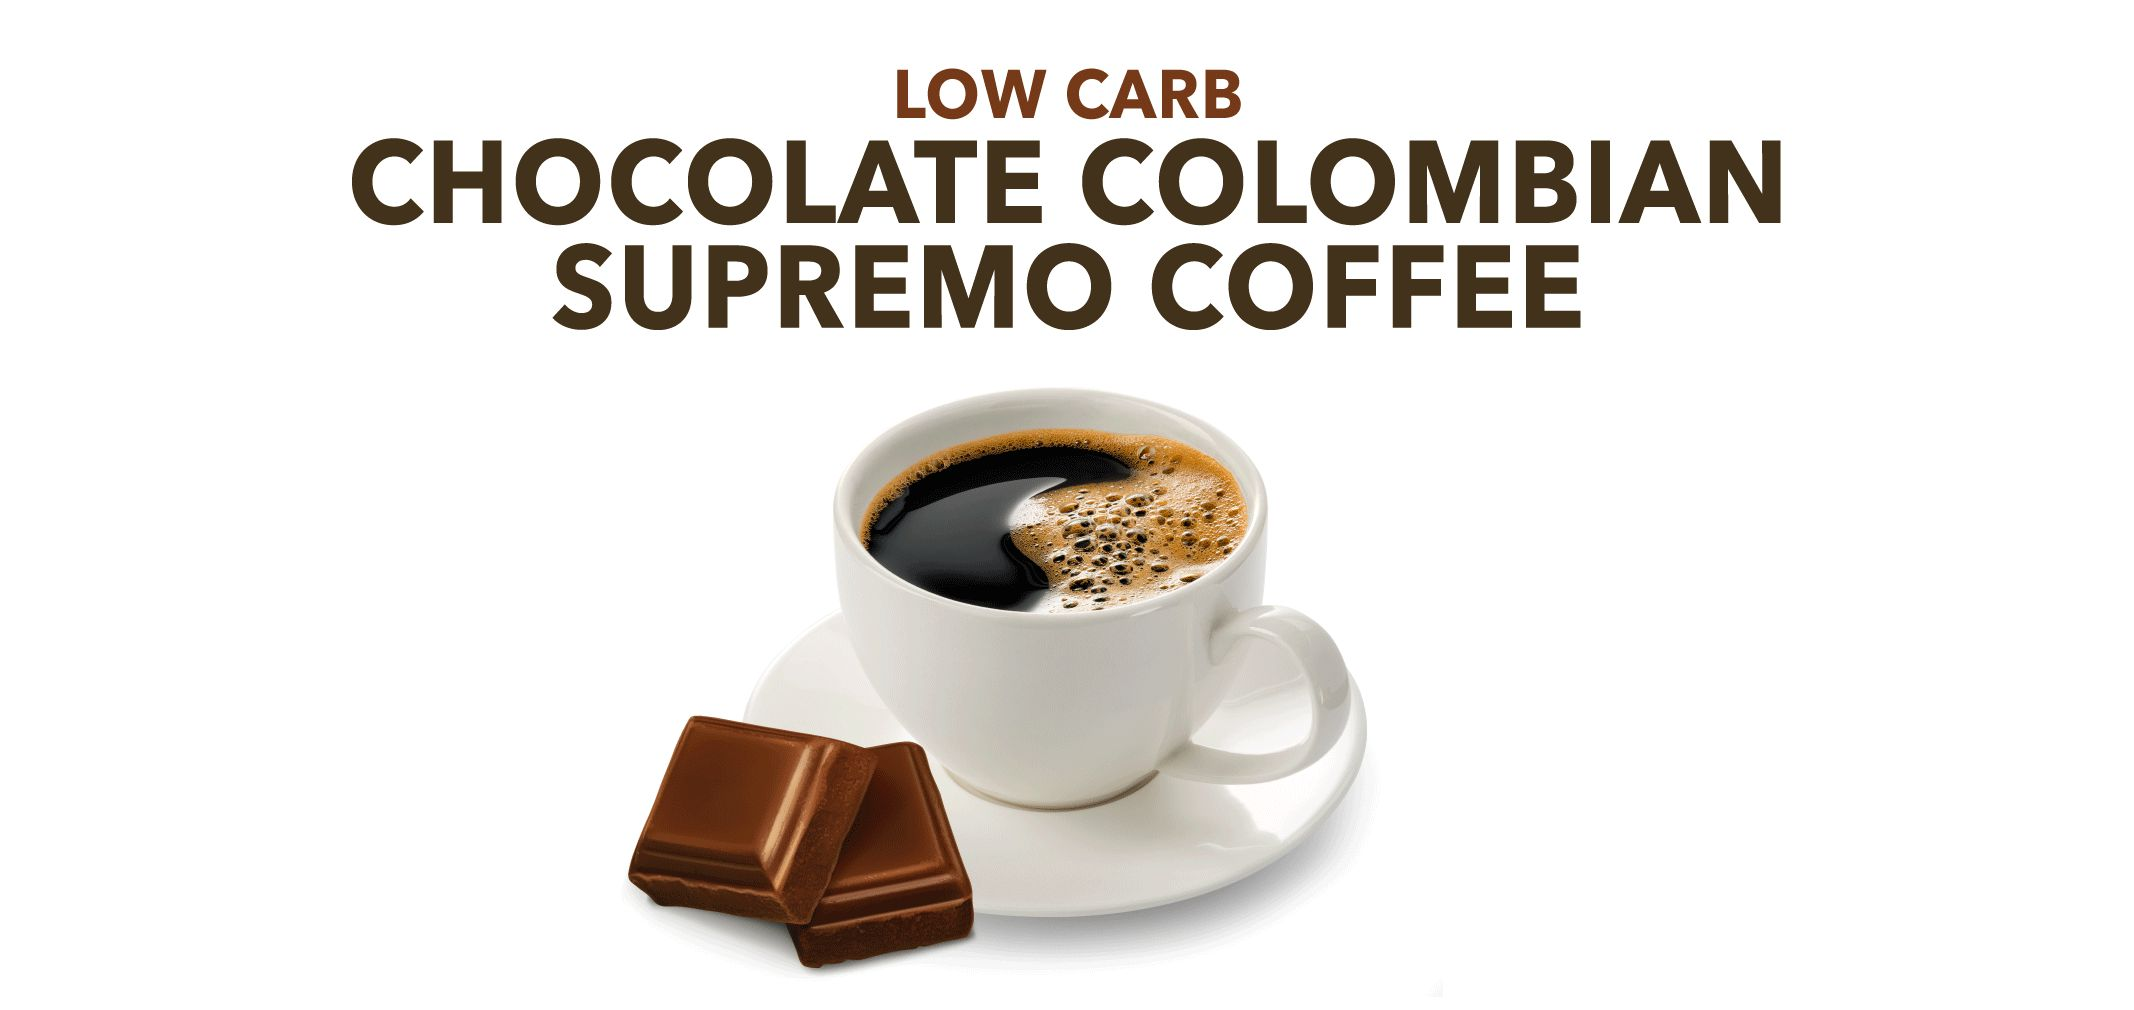 low carb colombian supremo coffee label image